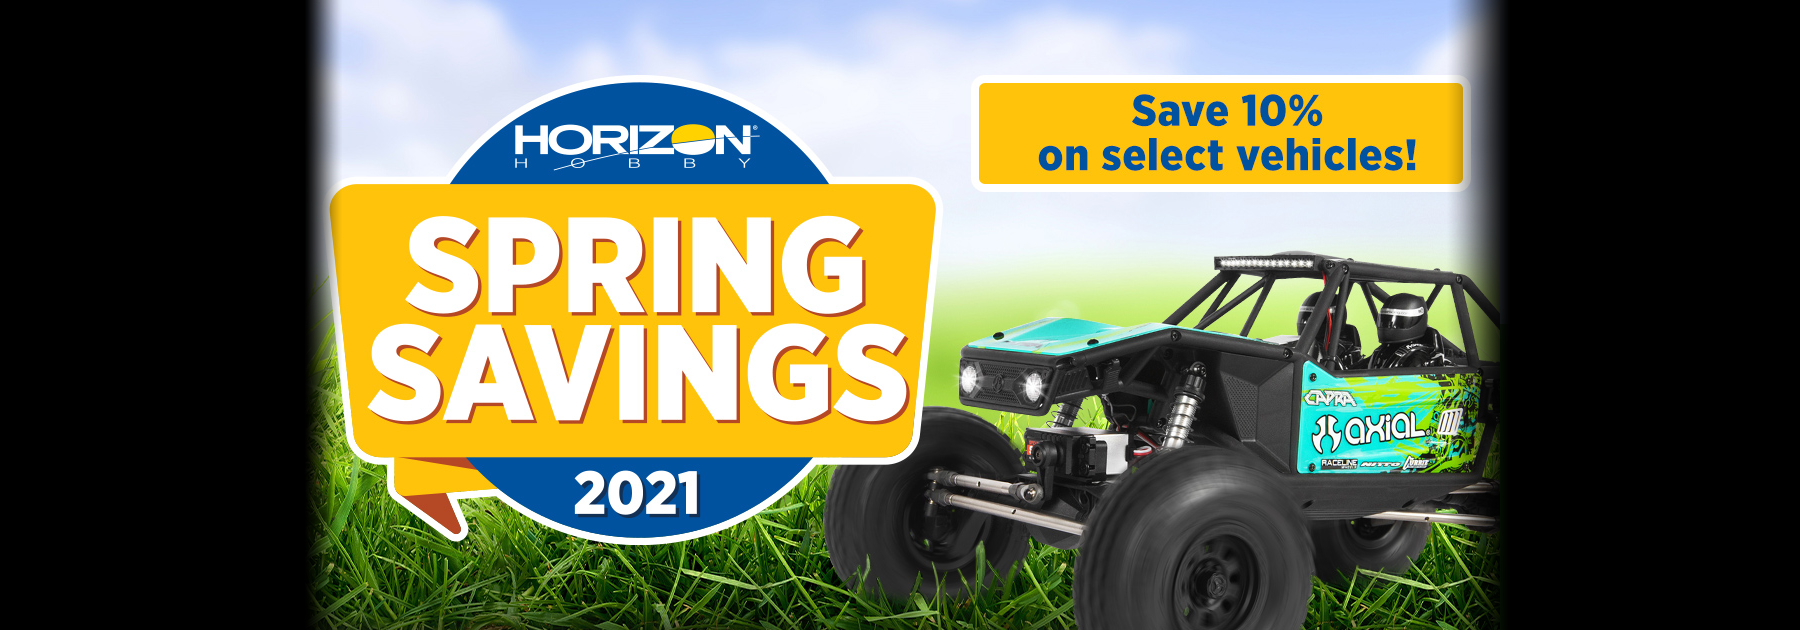 Horizon's Spring Savings Starts April 15 2021